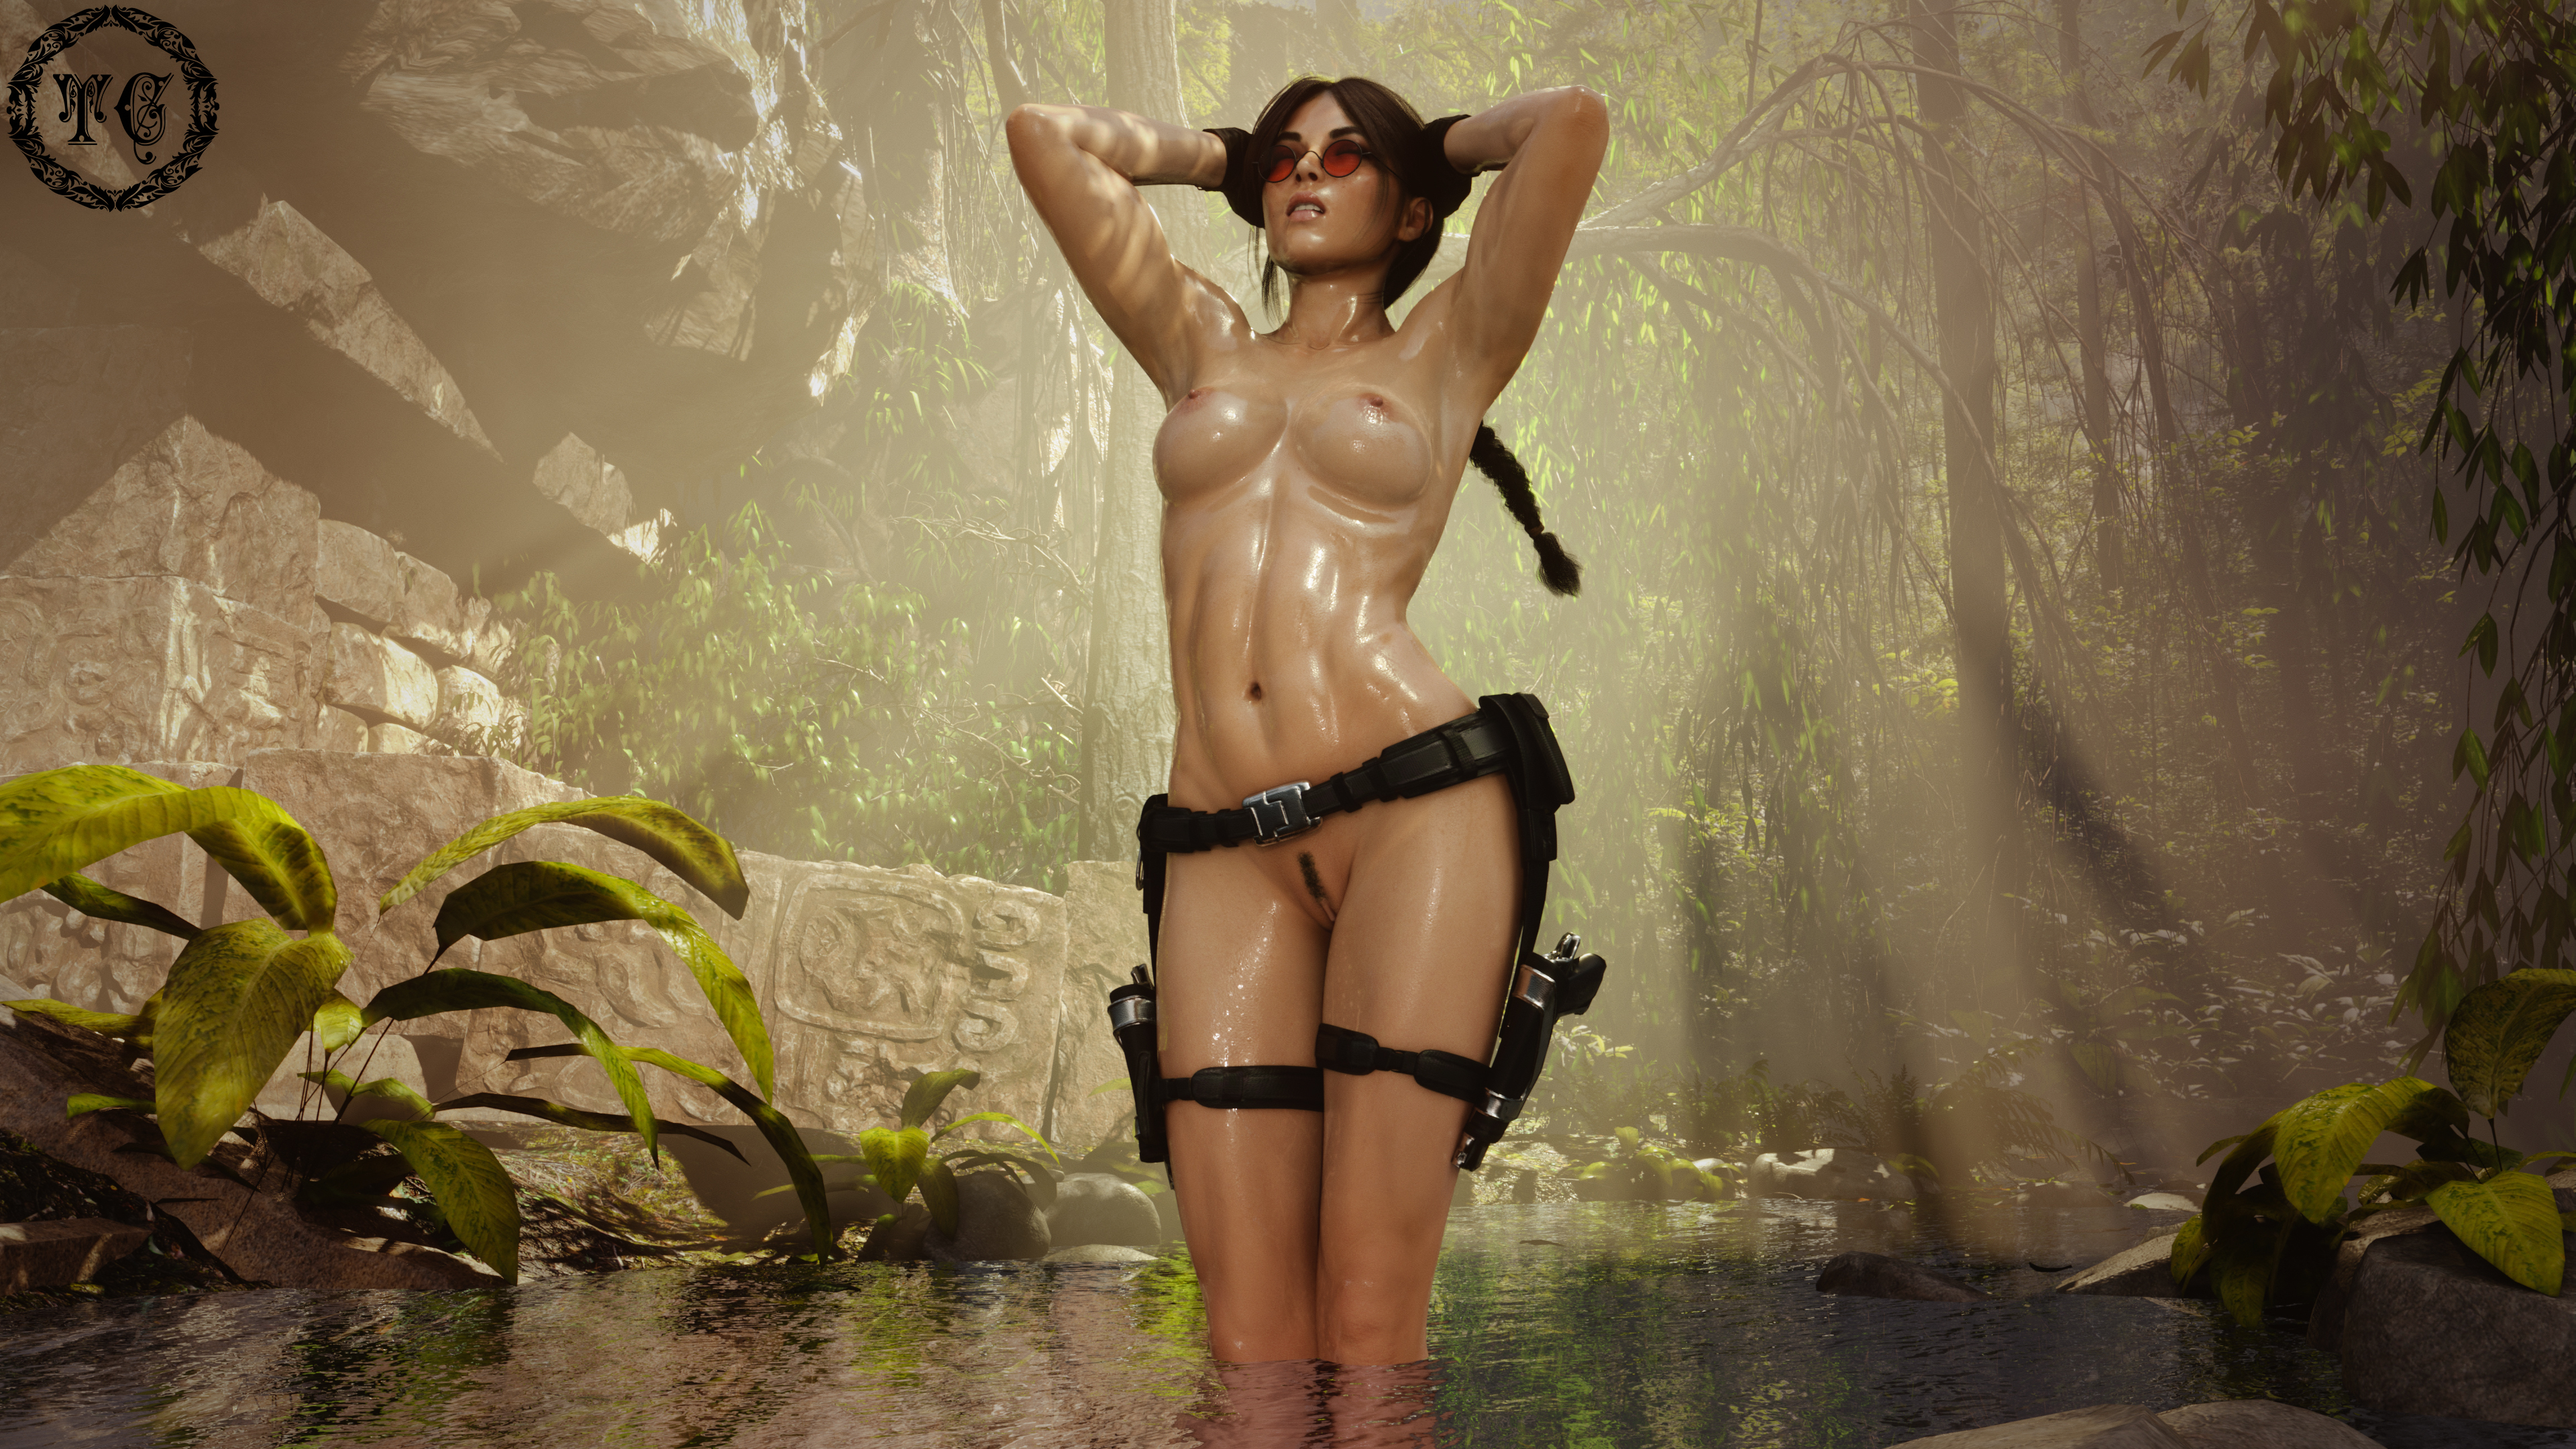 Lara Croft - Cooling off in the rain forest